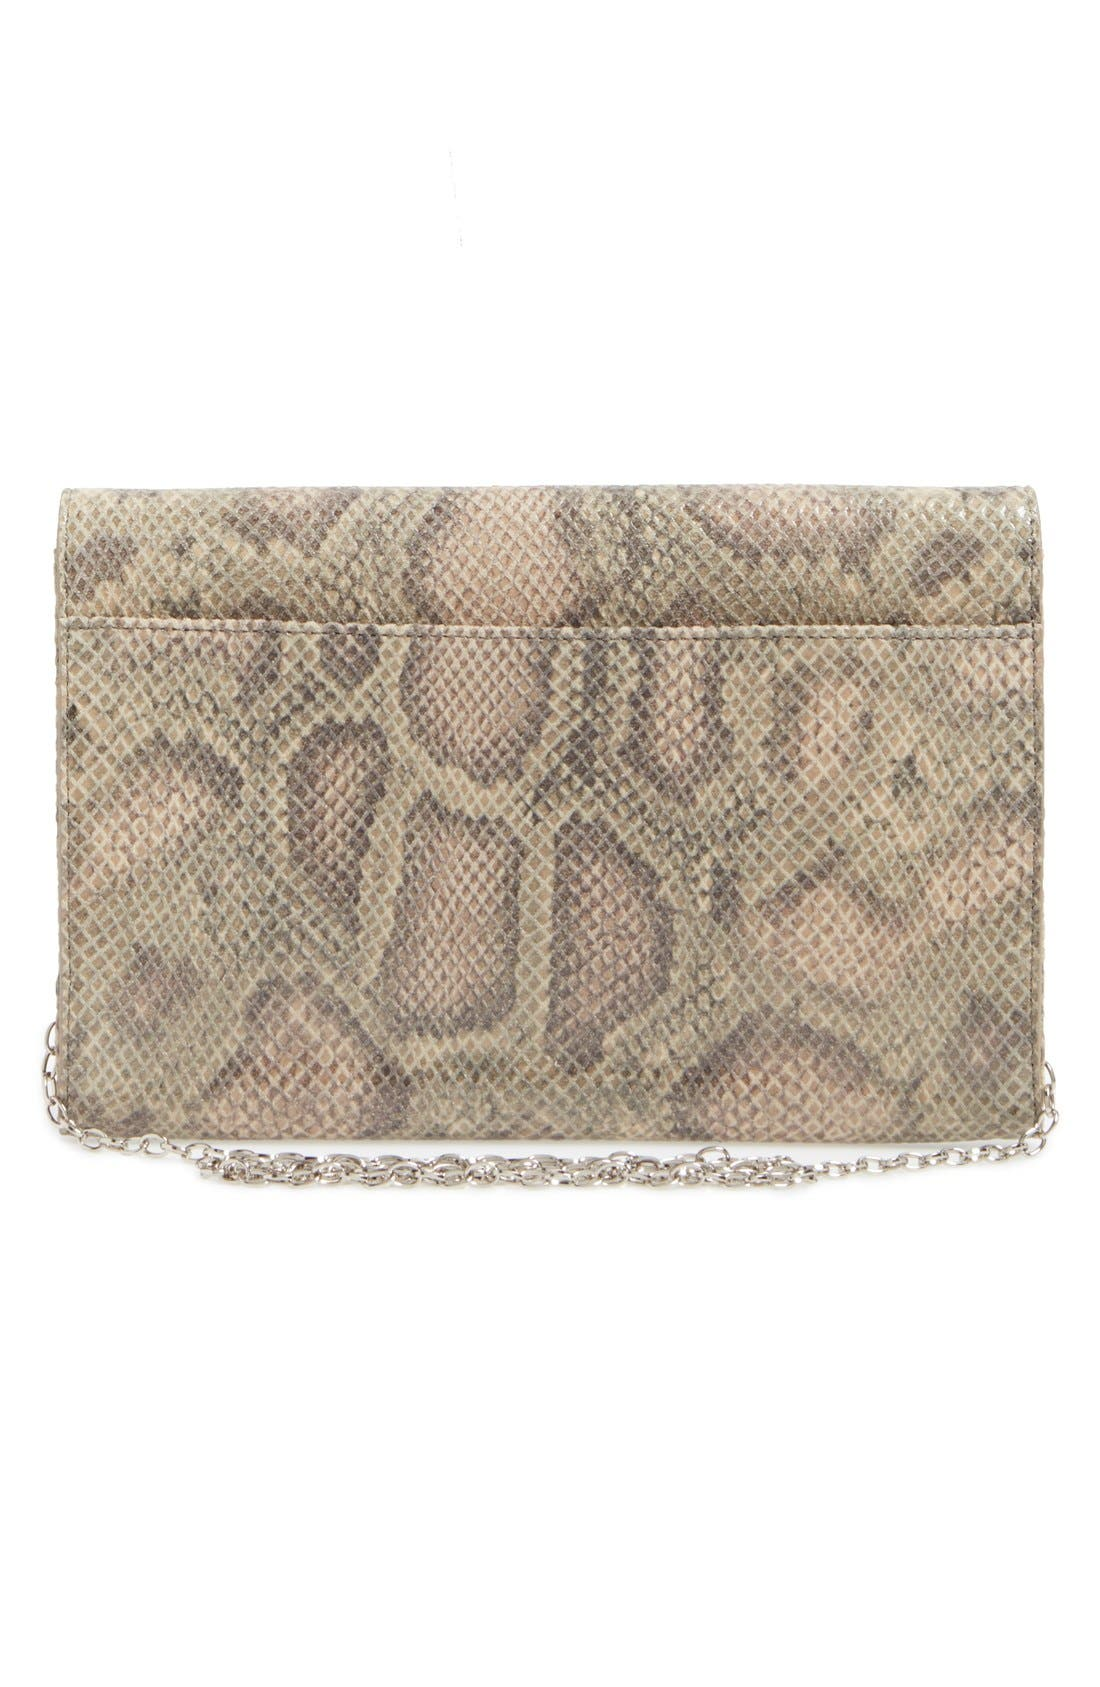 Angled Leather Day Clutch,                             Alternate thumbnail 3, color,                             Brown Falcon Snake